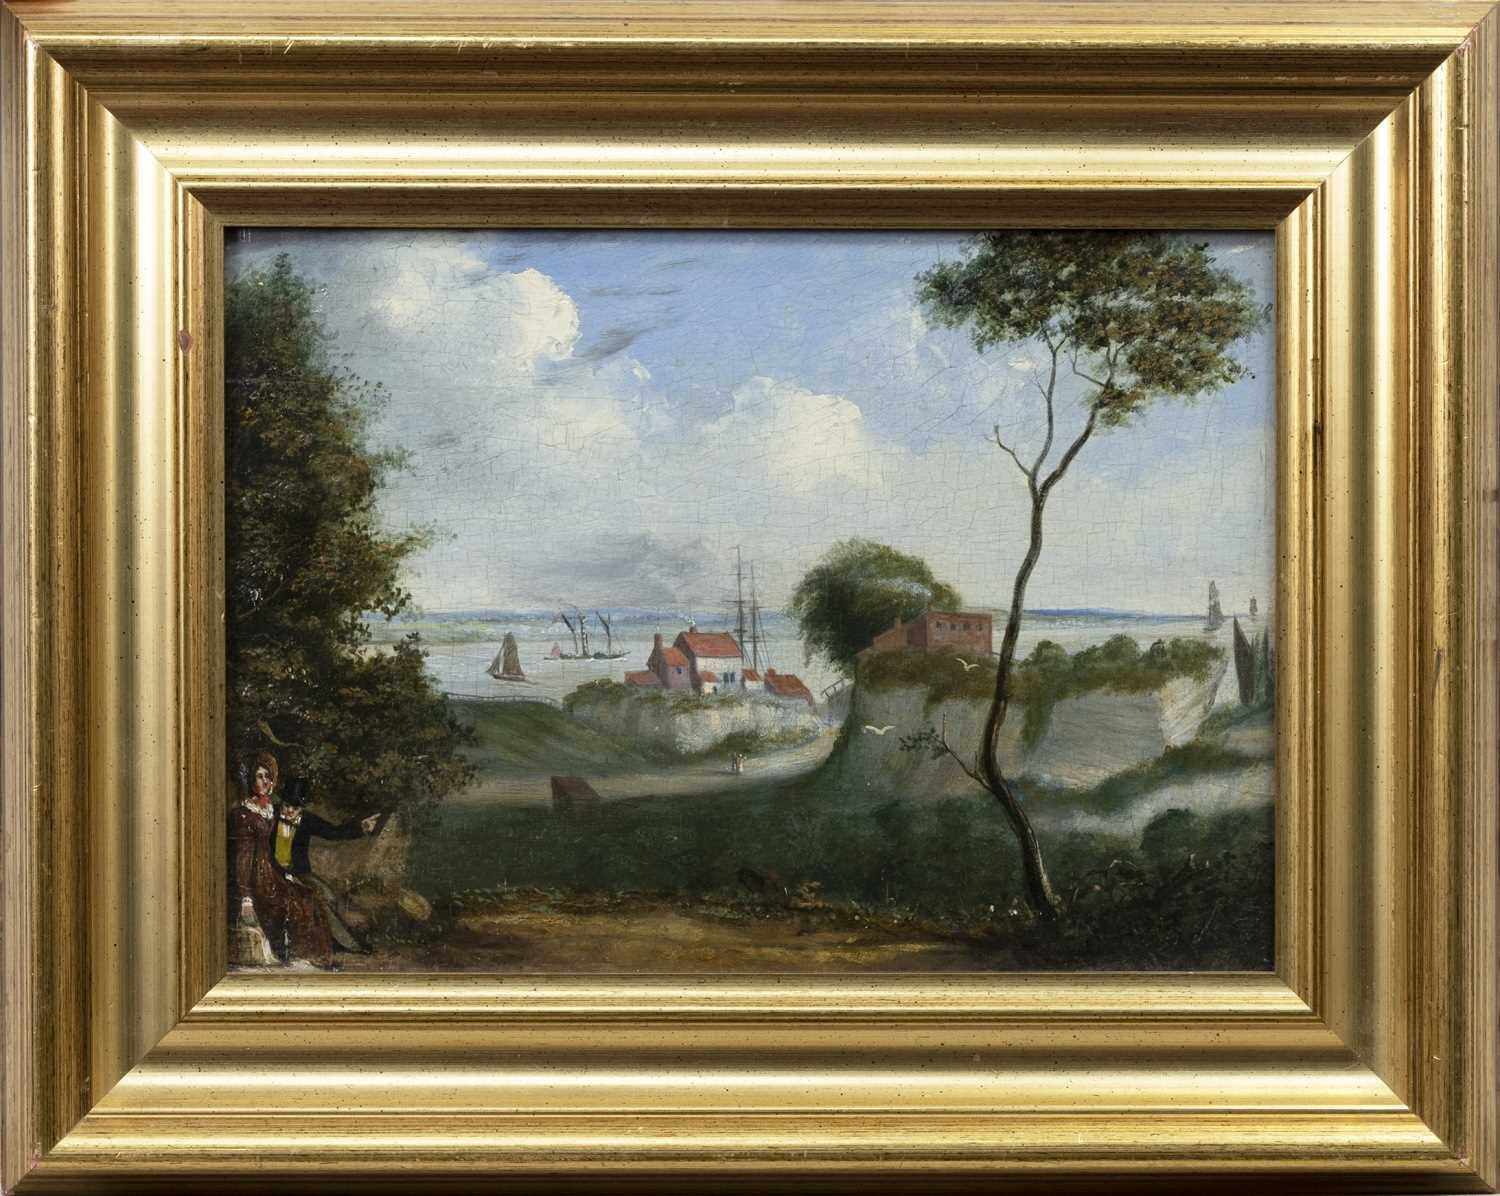 Lot 50 - SHIPS IN HARBOUR, A BRITISH OIL